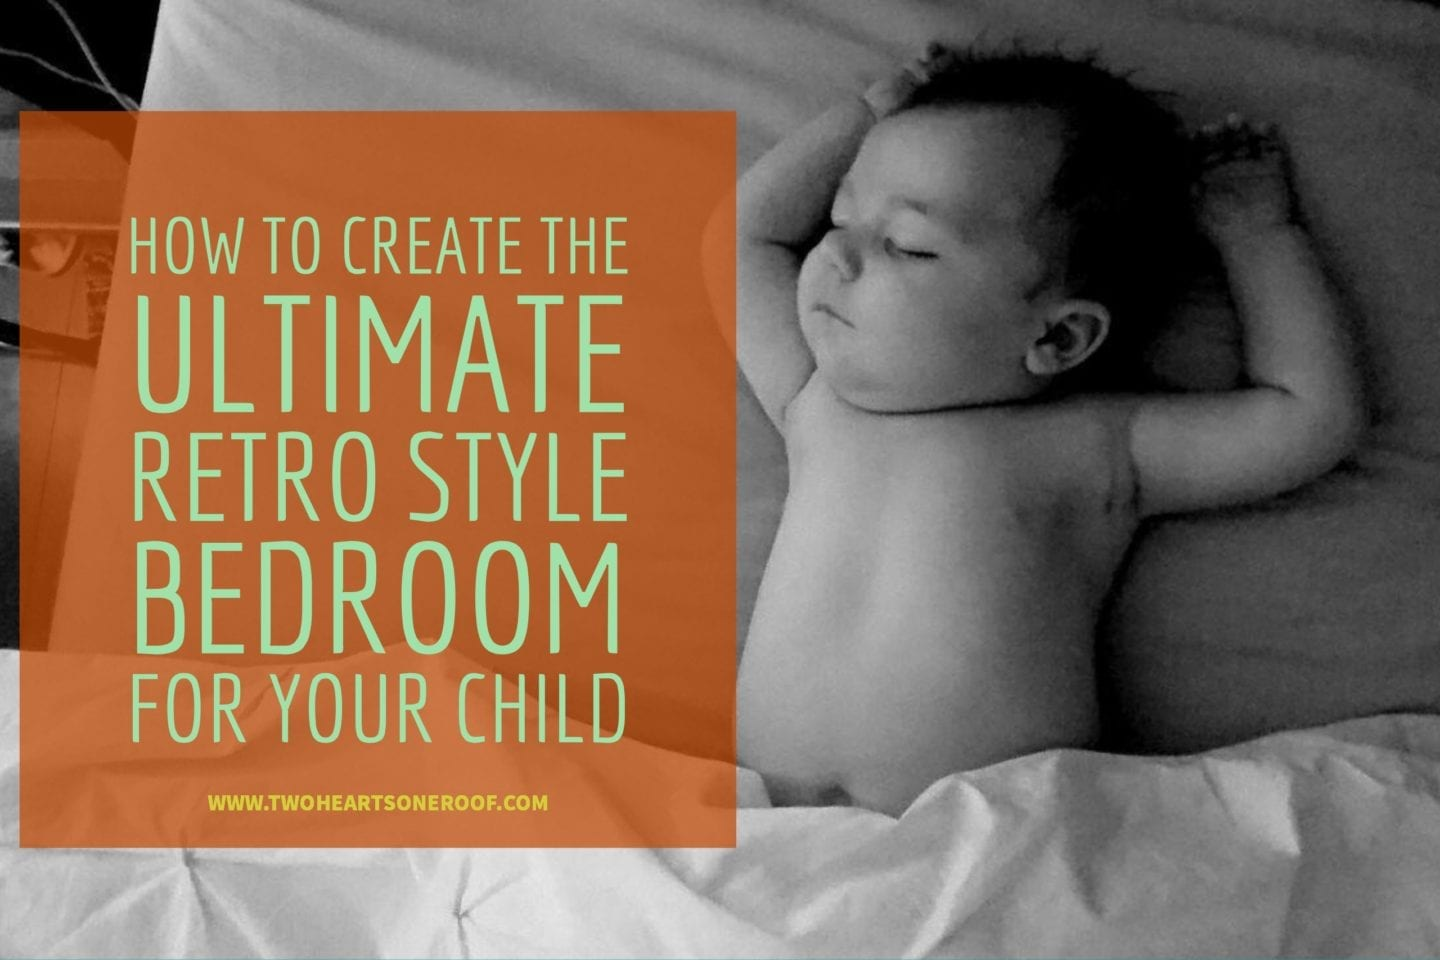 How To Create The Ultimate Retro Style Bedroom For Your Child